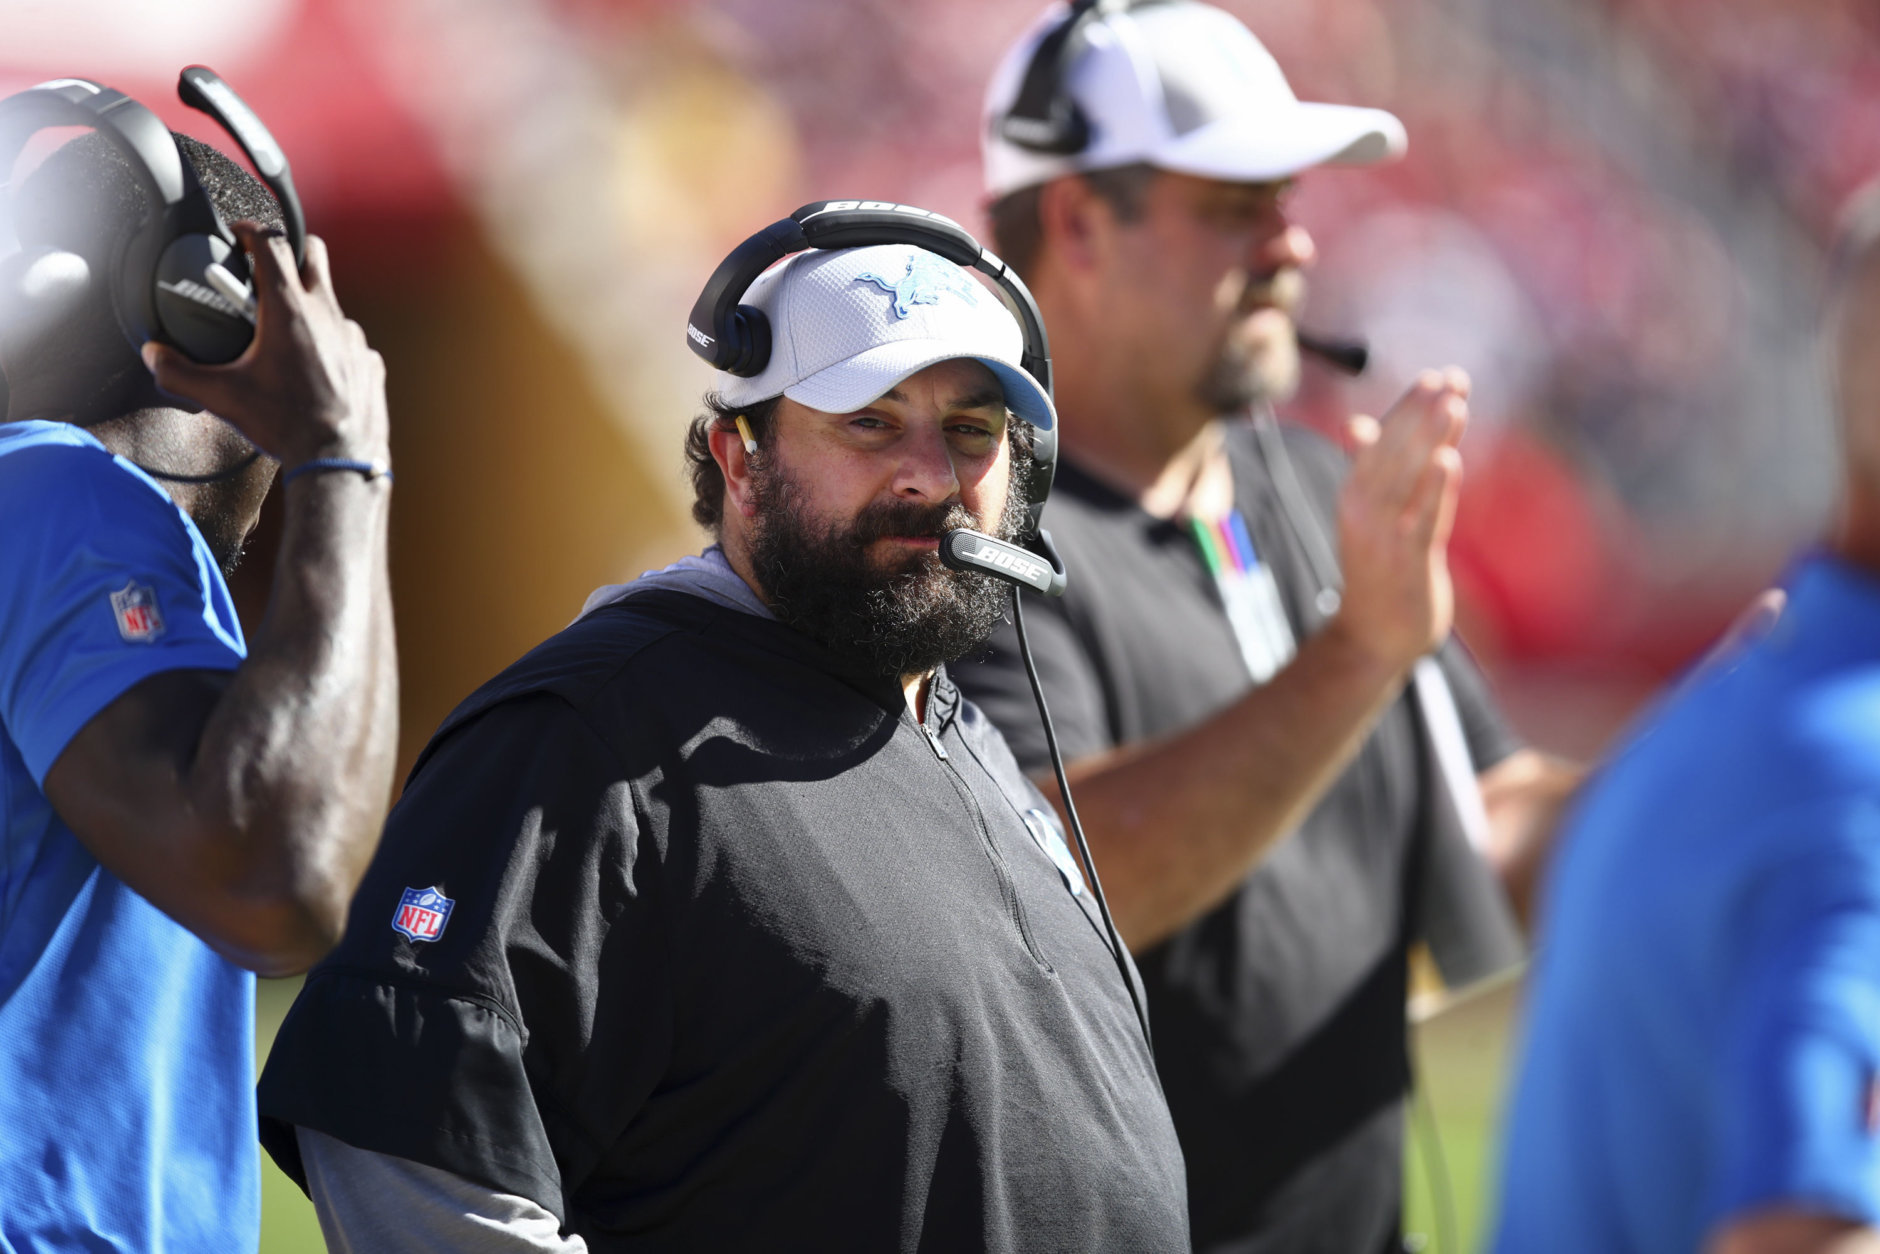 Detroit Lions head coach Matt Patricia stands on the sidelines during the second half of an NFL football game against the San Francisco 49ers in Santa Clara, Calif., Sunday, Sept. 16, 2018. San Francisco won the game 30-27. (AP Photo/Ben Margot)